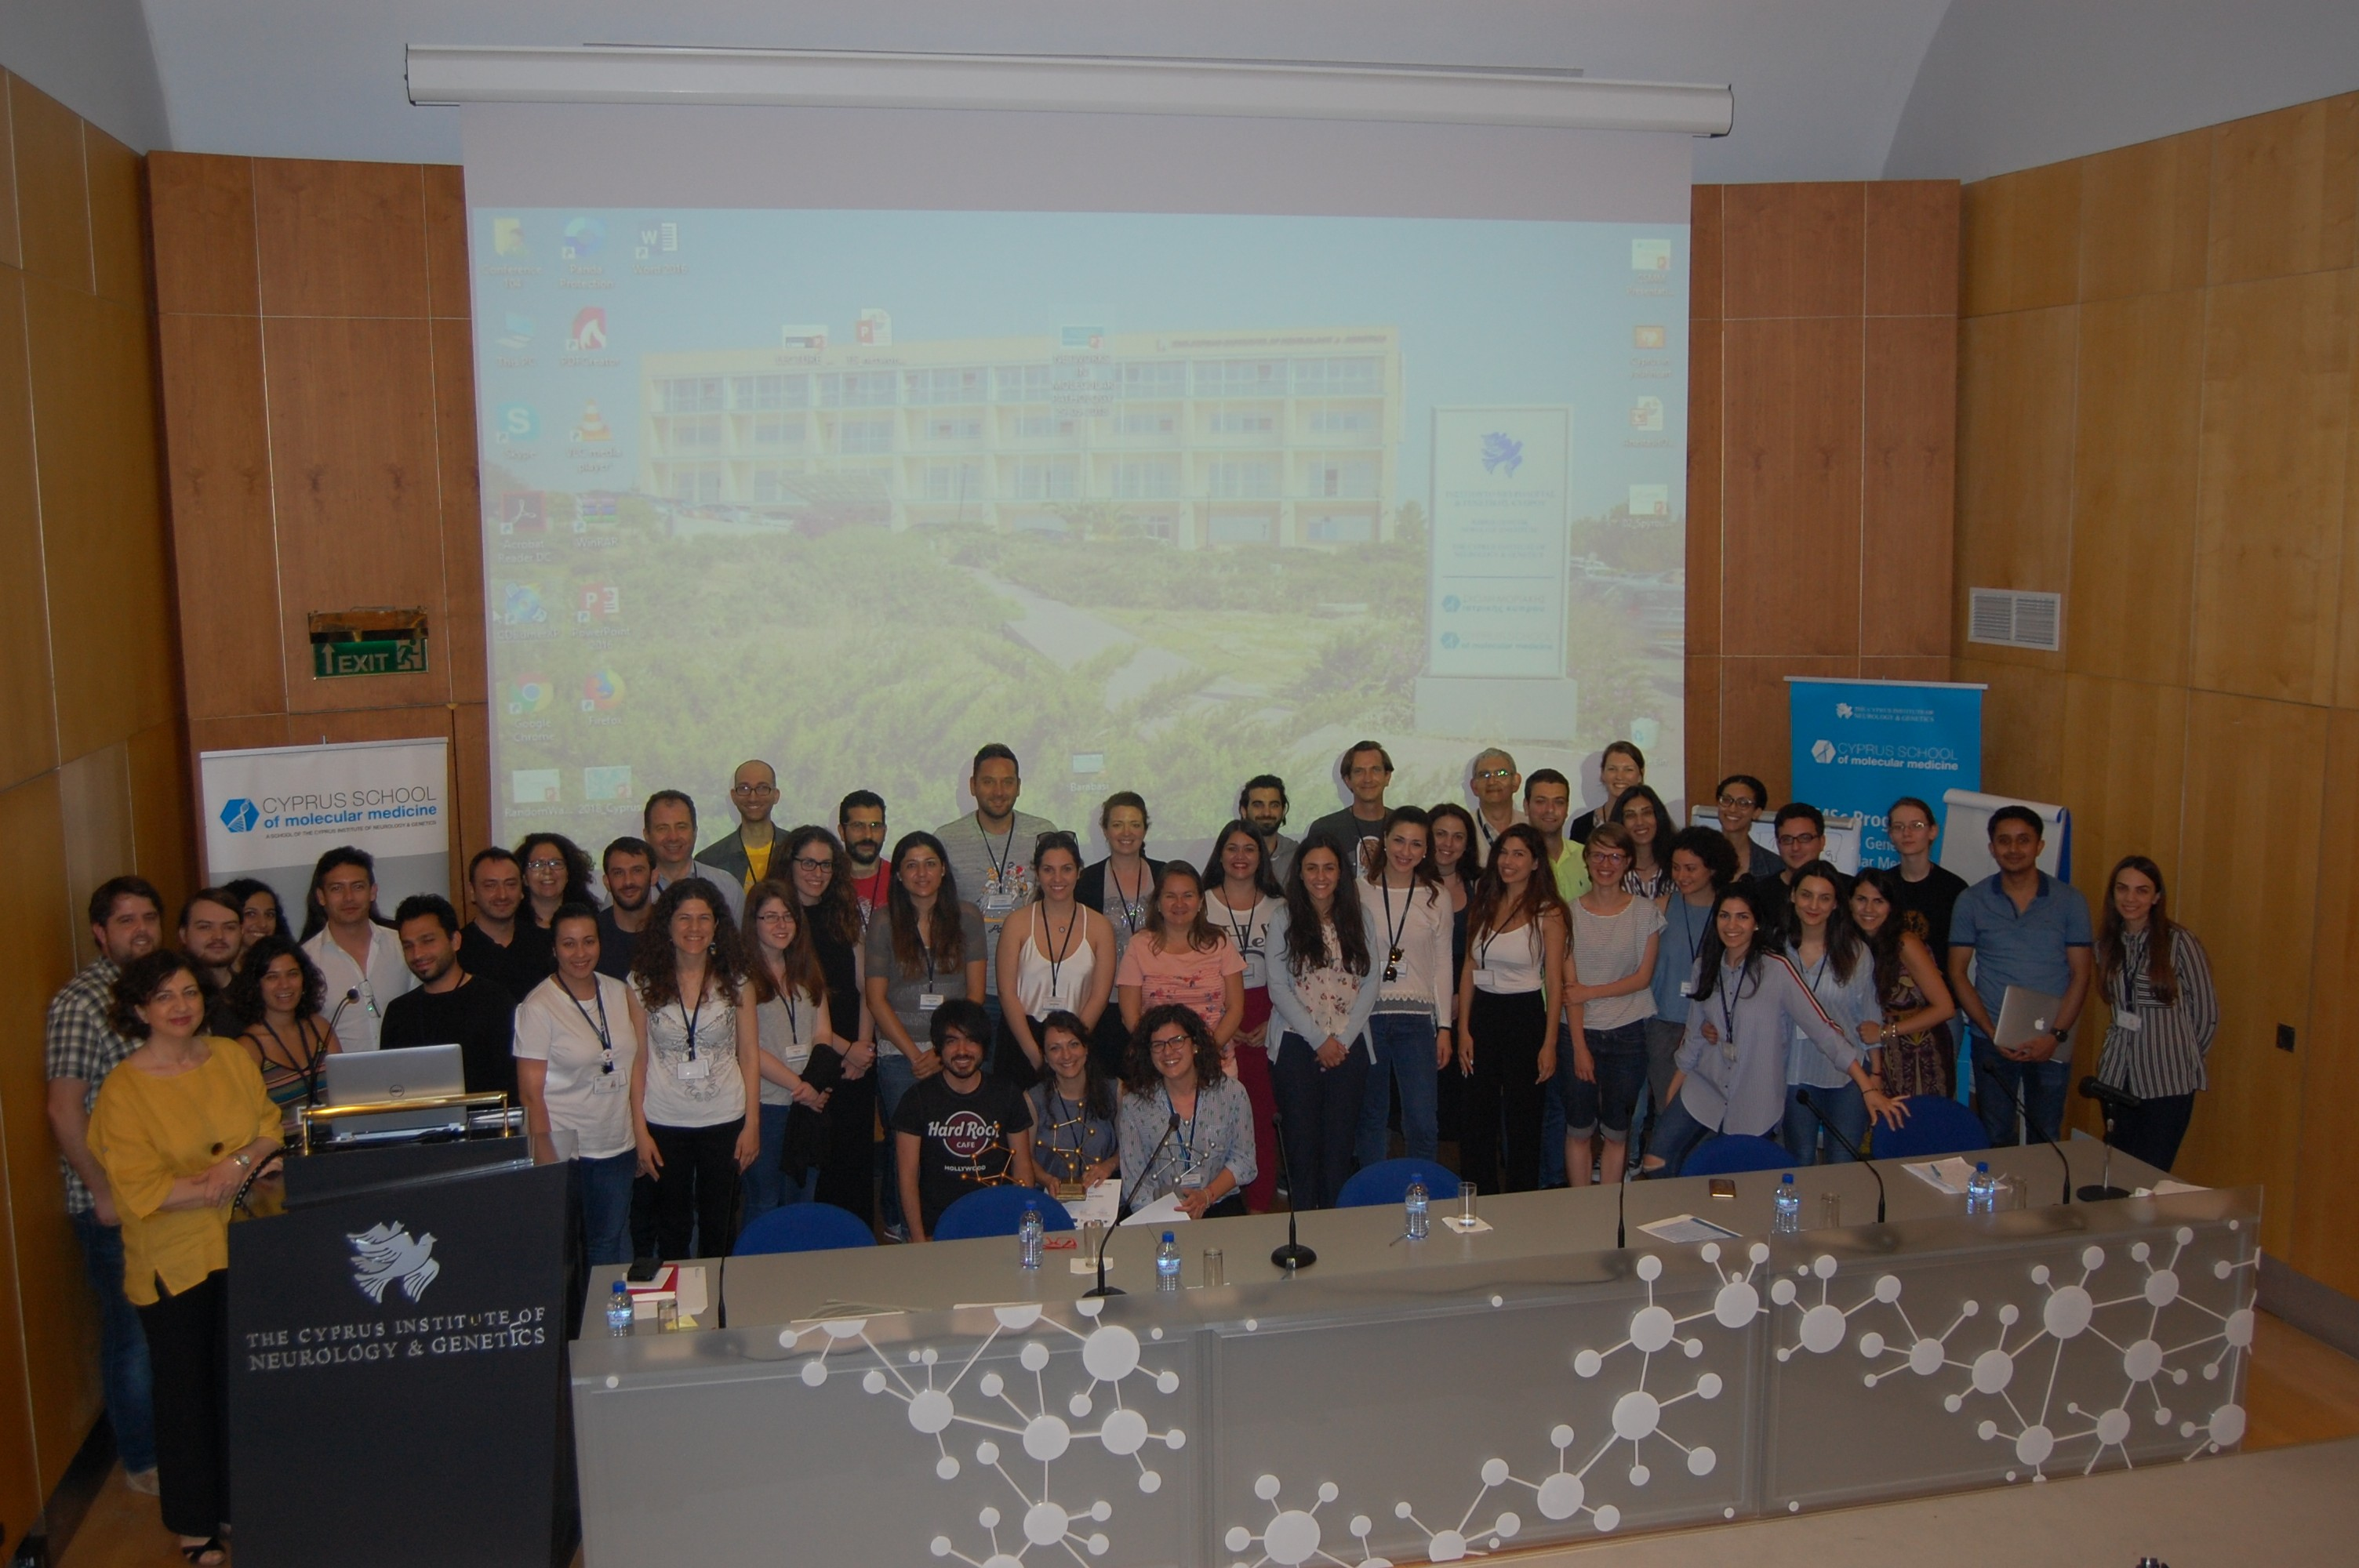 The 4th OpenMultiMed Cost Training School in Systems Bioinformatics towards Network Medicine